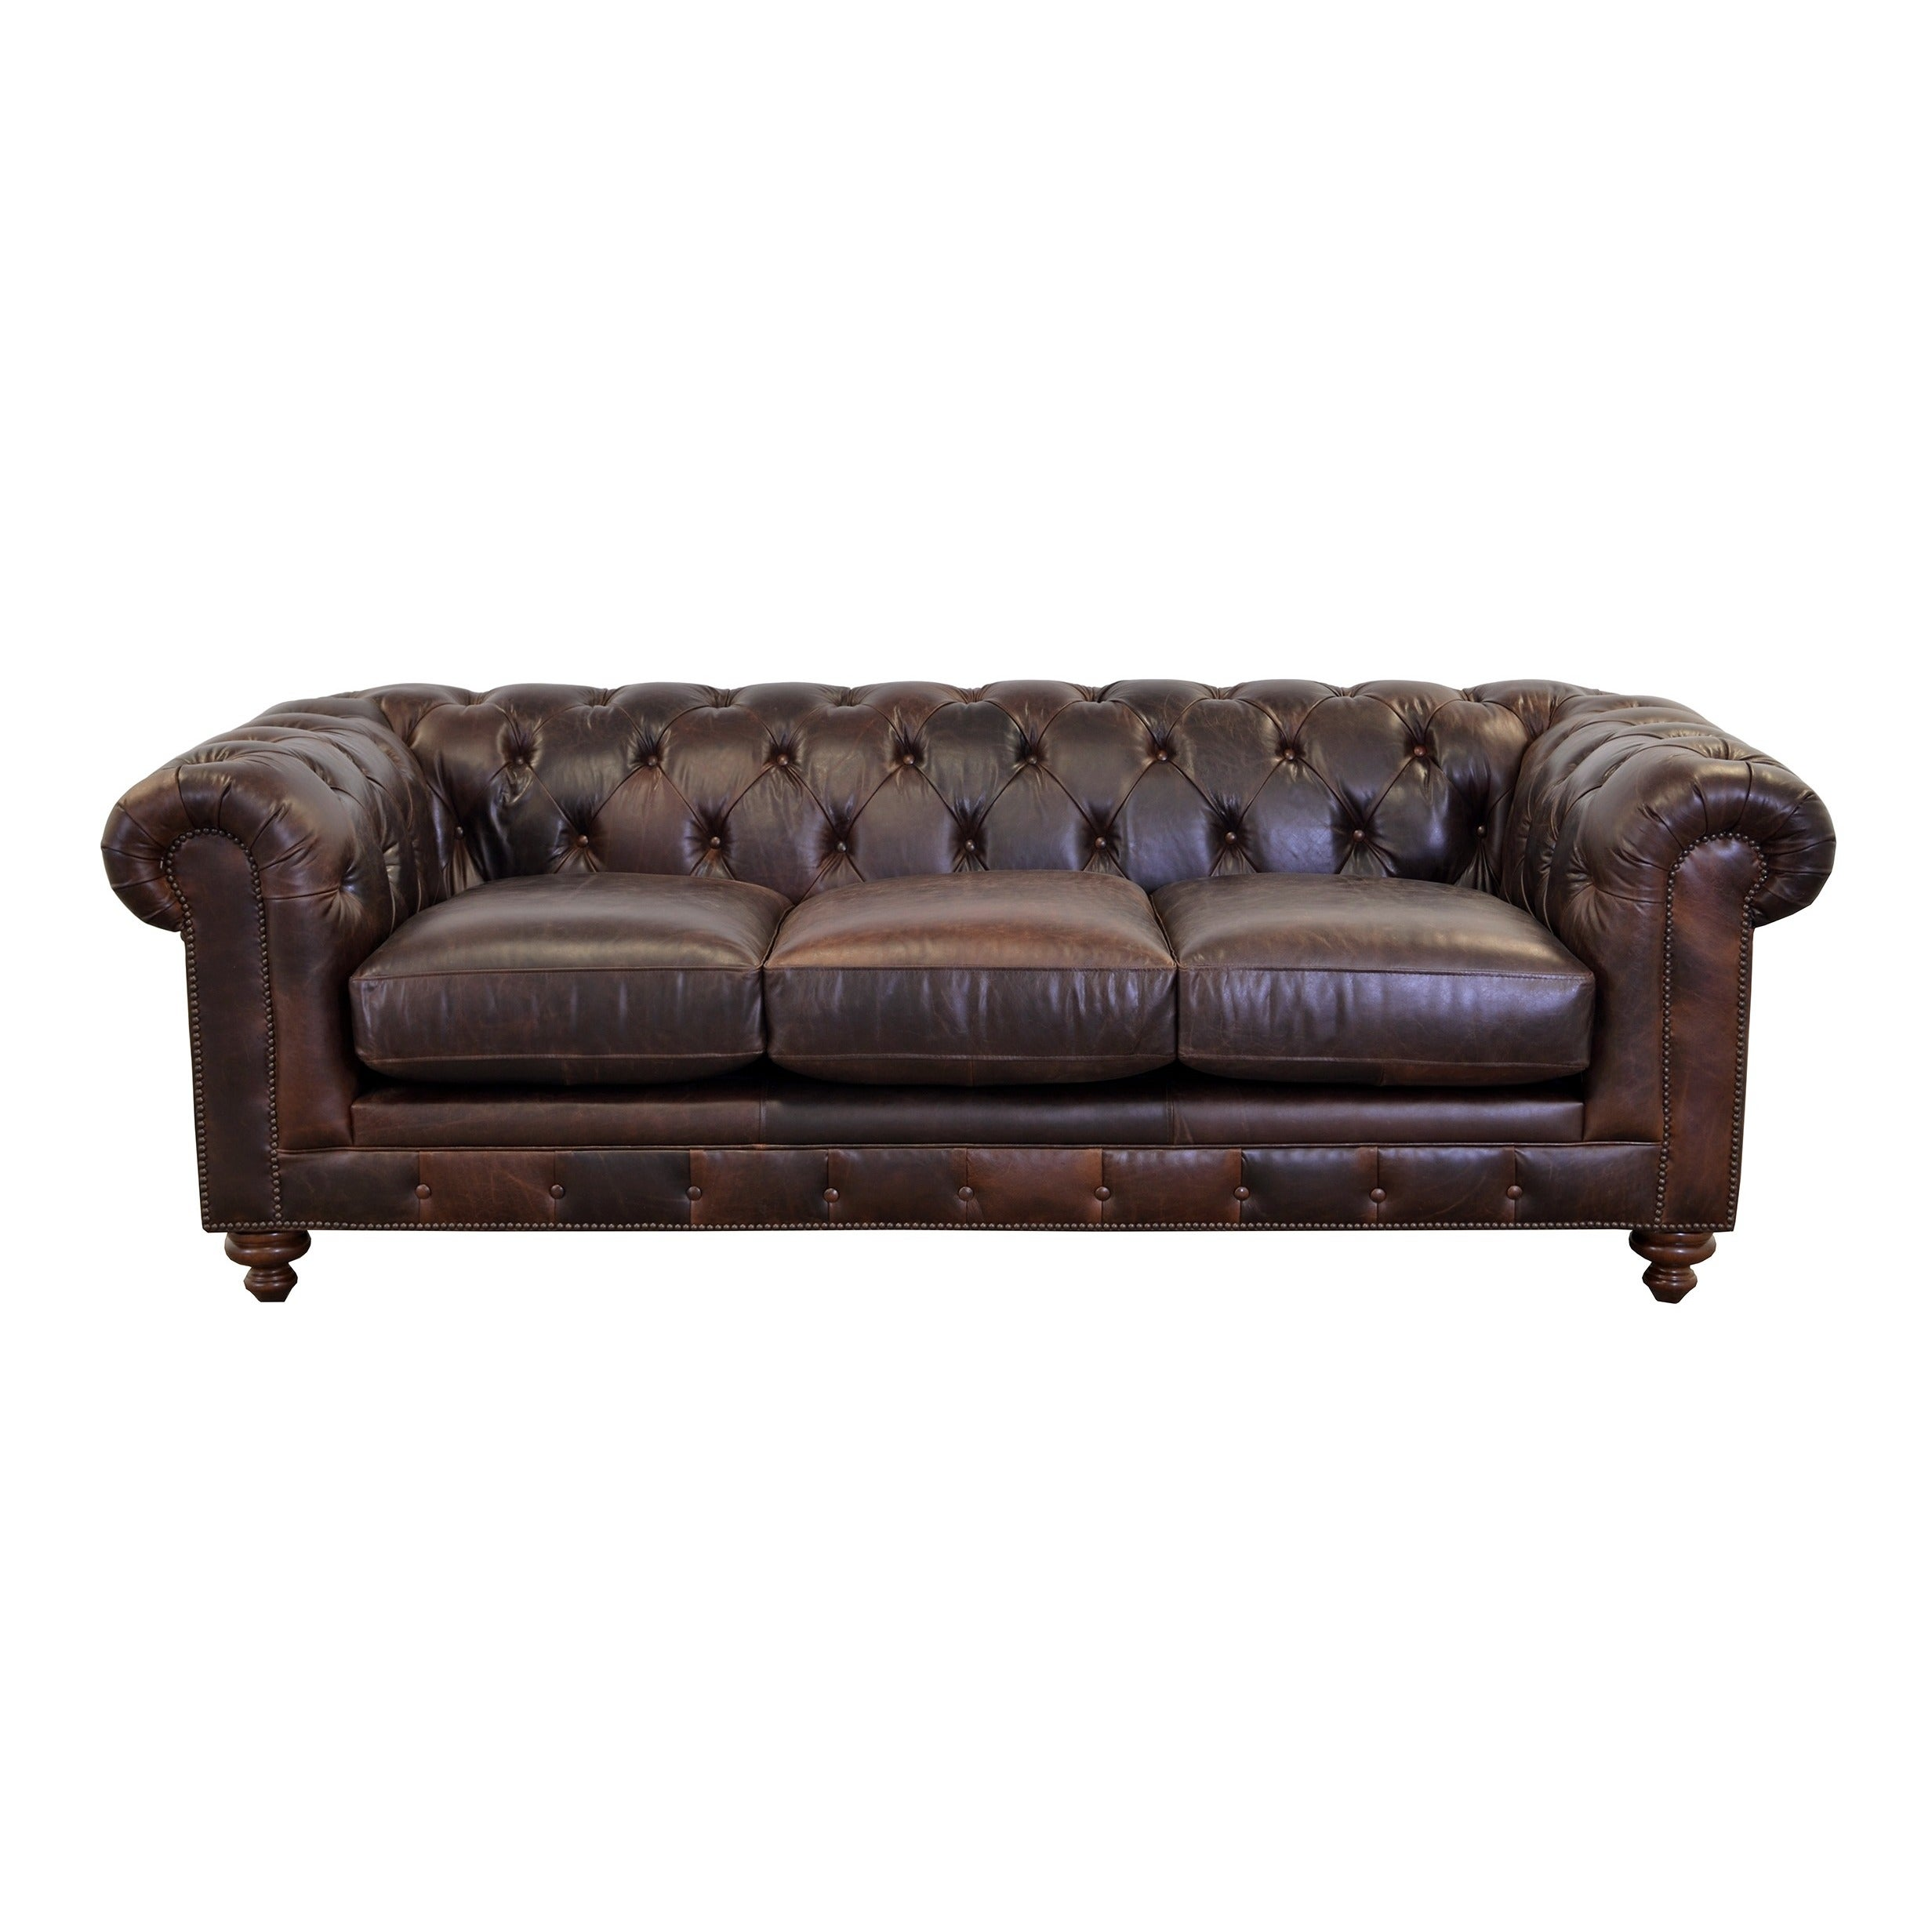 Newbury Top Grain Leather Chesterfield Sofa With On Tufting Free Shipping Today 12838247